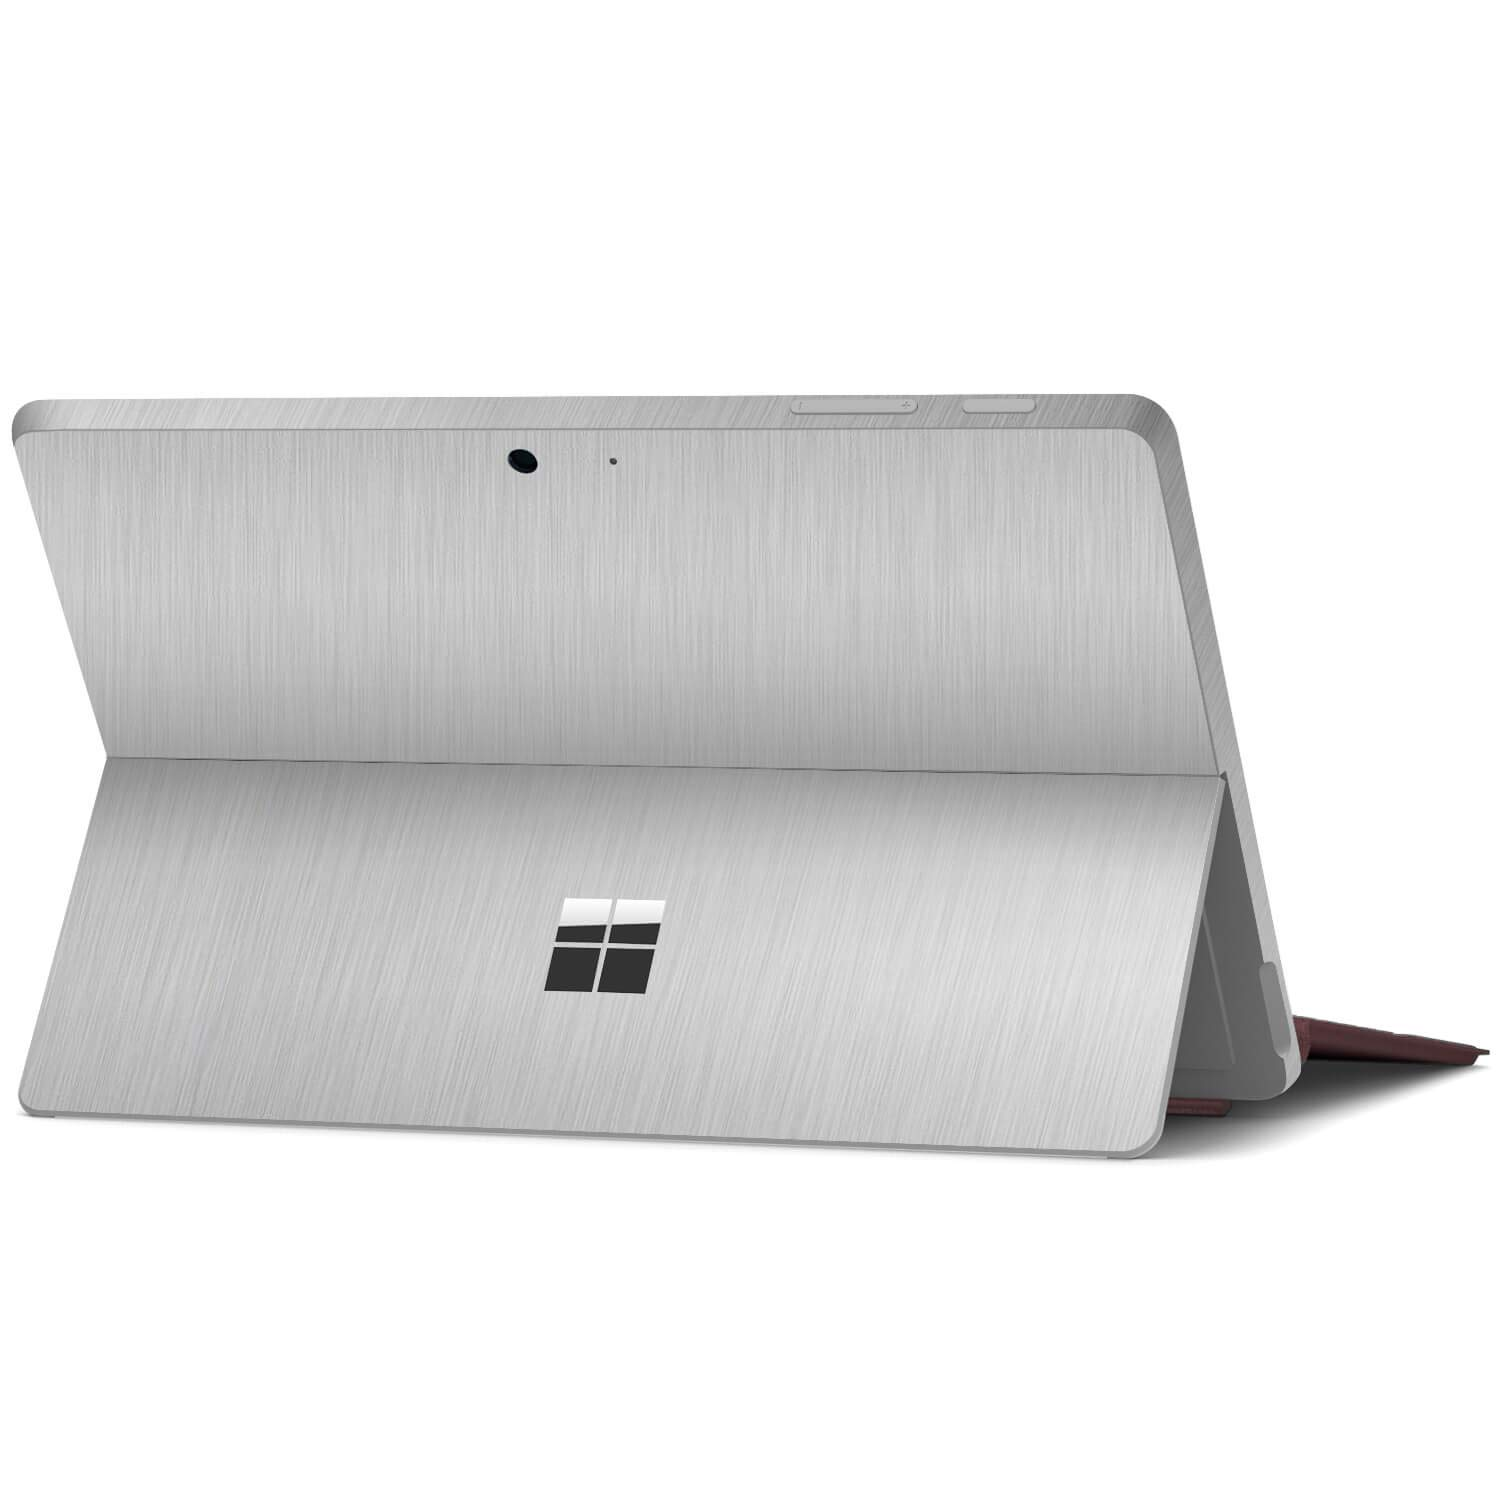 Textured Skin Stickers for Microsoft Surface Go Black Leather